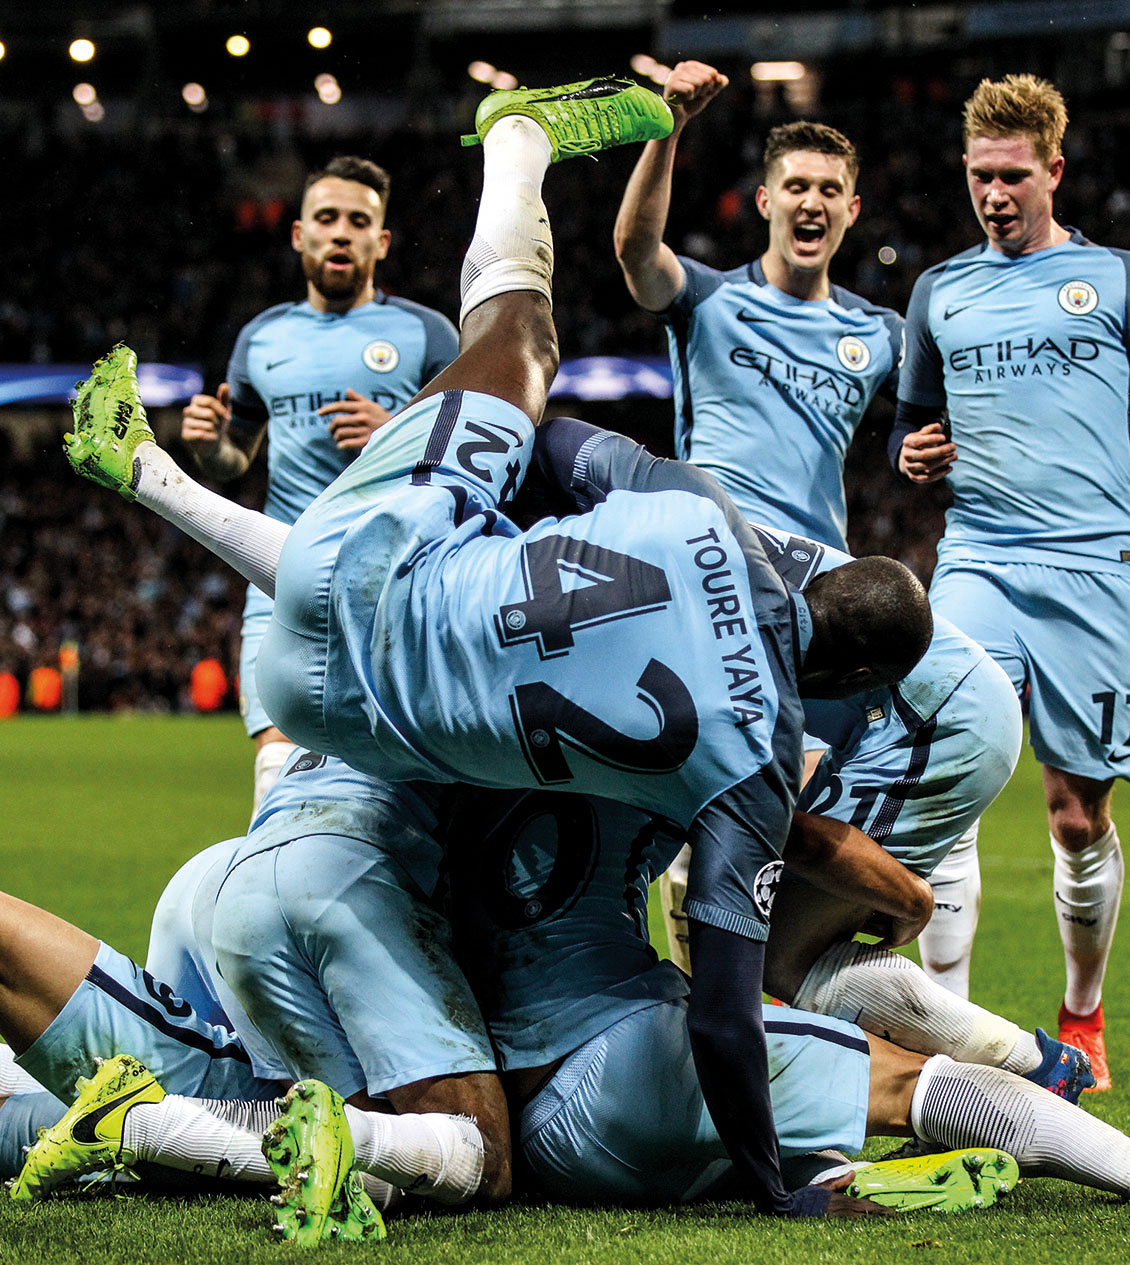 Manchester City's Leroy Sane celebrates scoring against Monaco with his teammates Yaya Toure, John Stones, Kevin De Bruyne